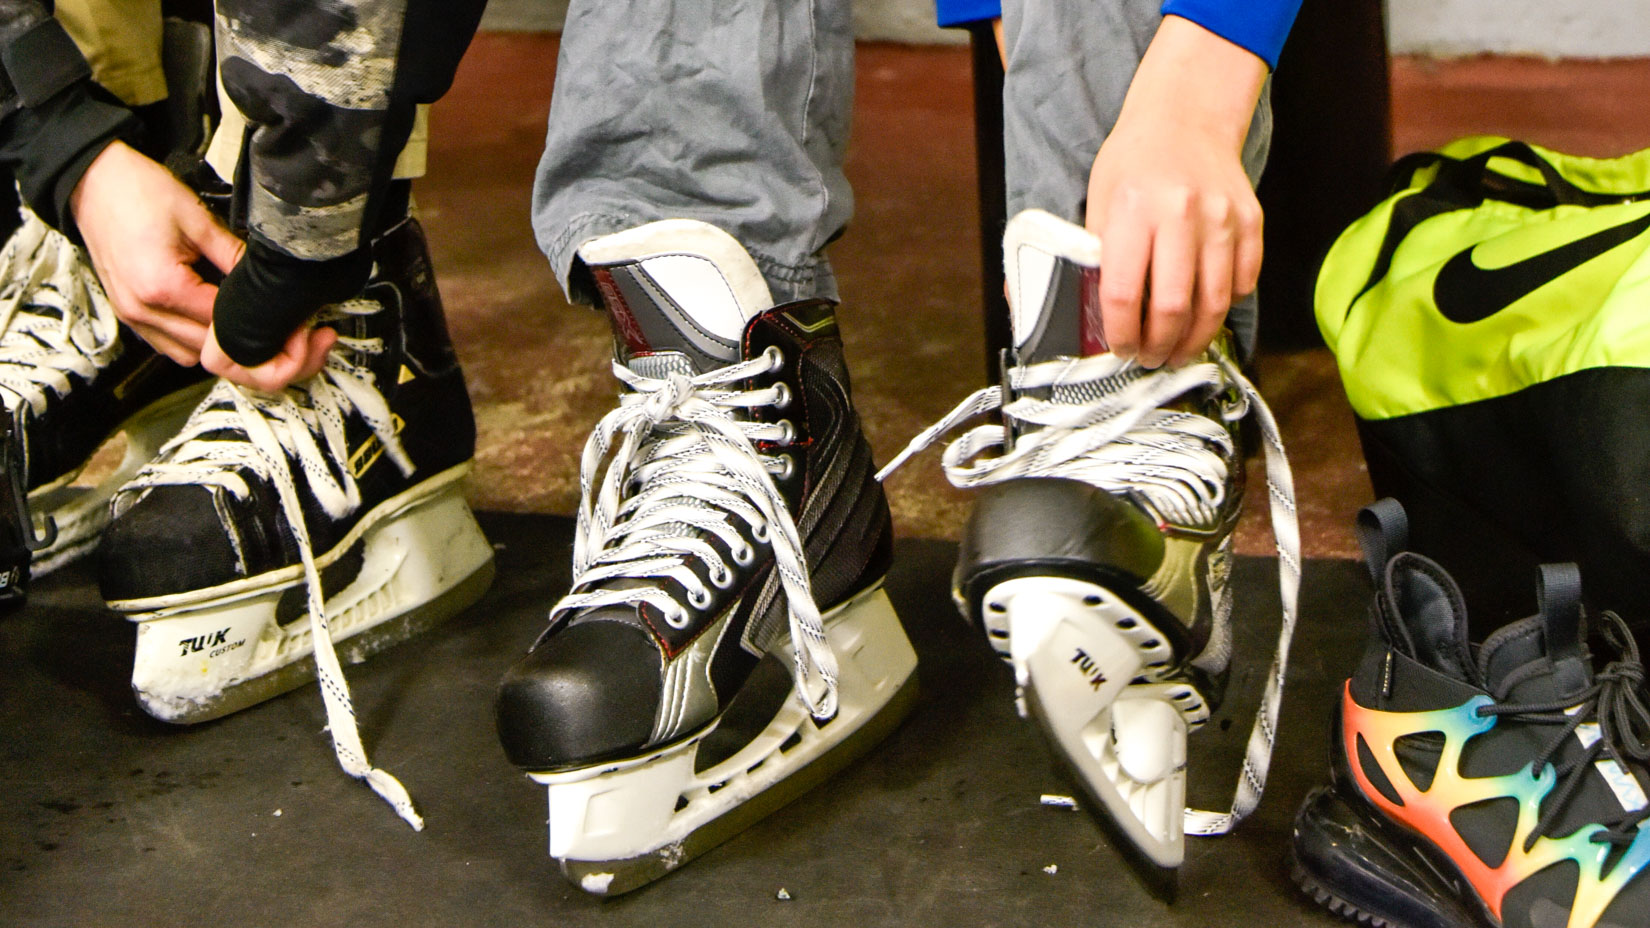 Students tying up their skates.